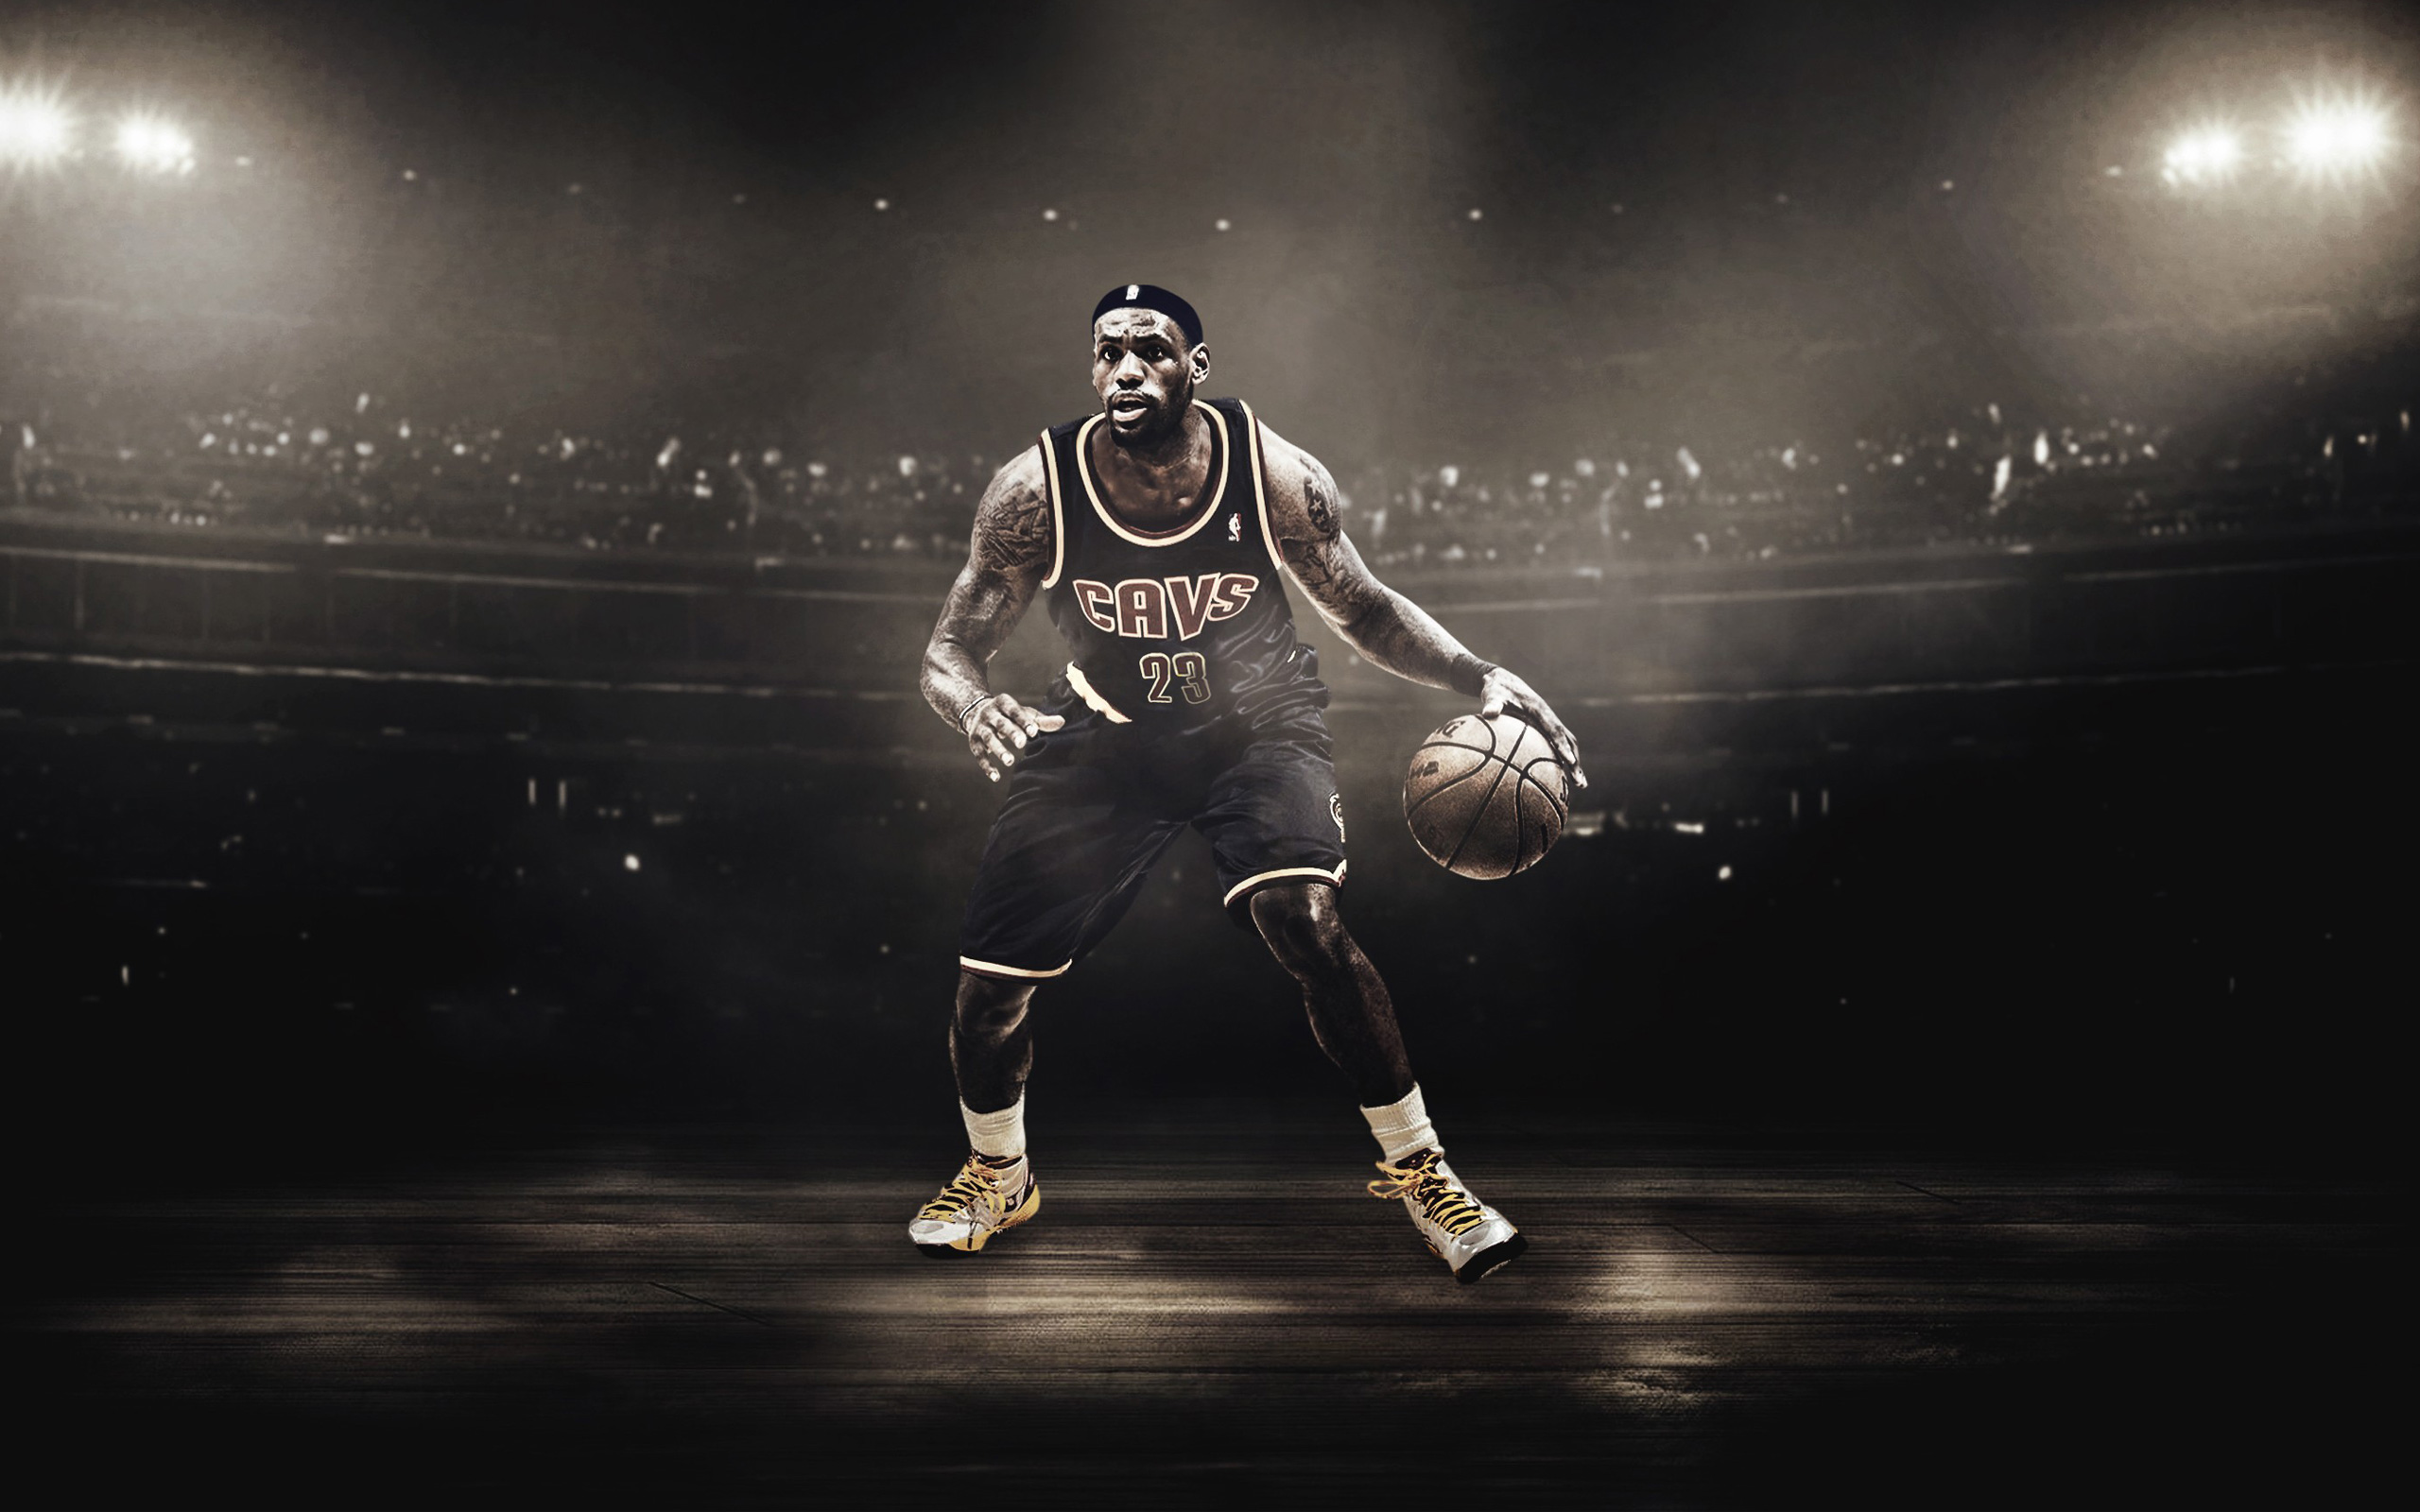 Free Download Lebron James Basketball Player Hd Wallpaper Ihd Wallpapers 2560x1600 For Your Desktop Mobile Tablet Explore 48 Lebron Wallpaper Downloader Download Lebron James Wallpaper Live Wallpapers Of Lebron